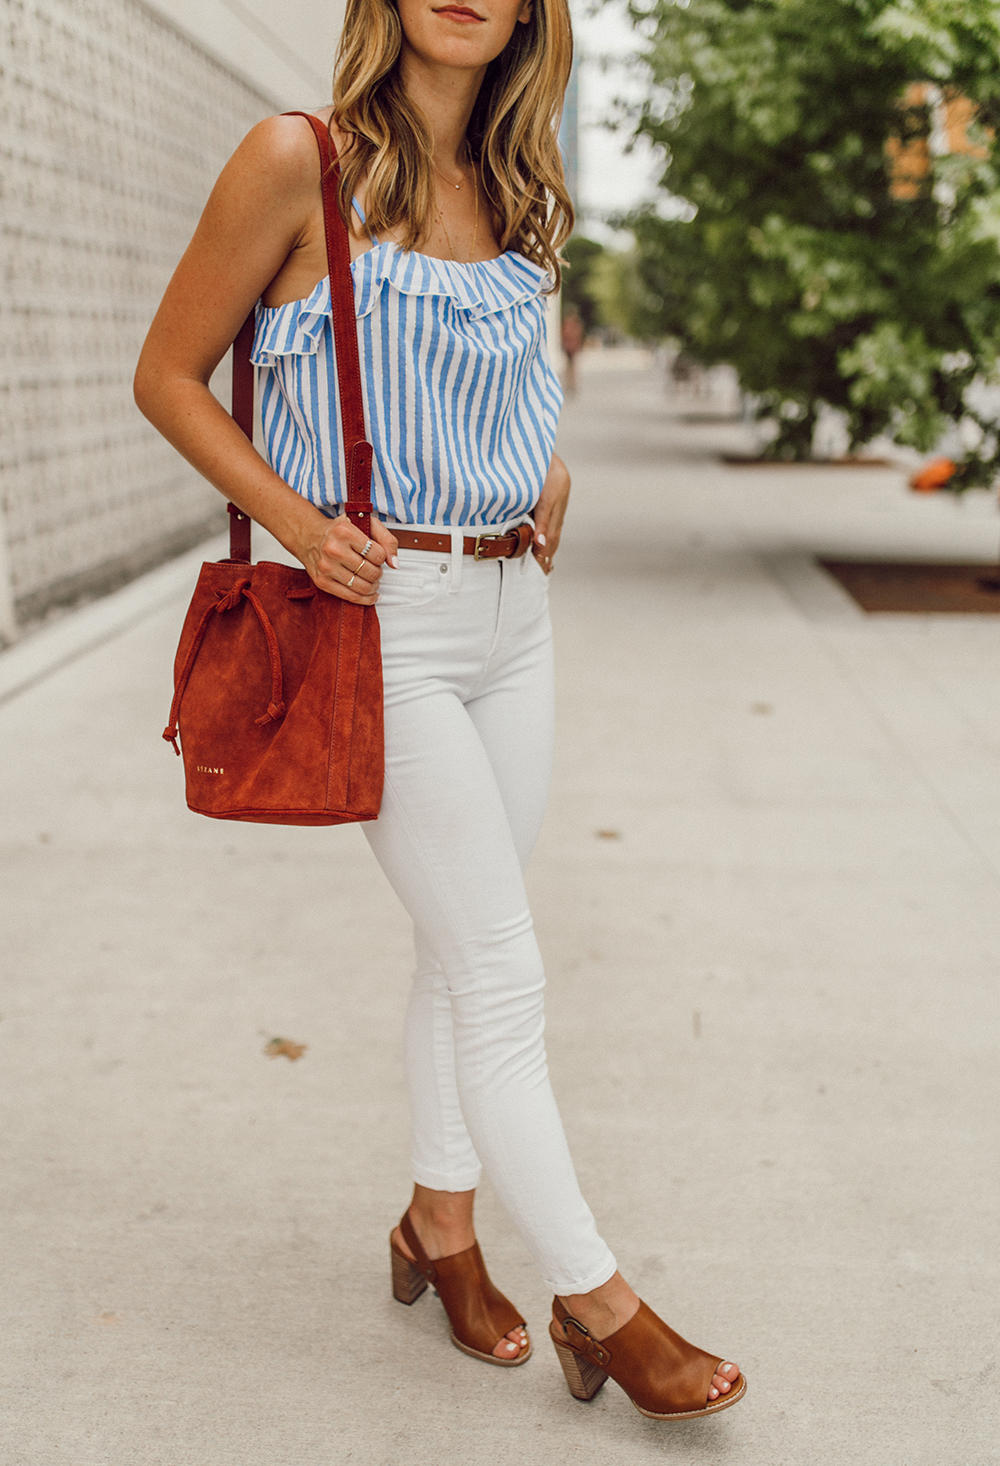 livvyland-blog-olivia-watson-austin-texas-fashion-style-blogger-madewell-white-jeans-sezane-cyrille-top-4th-of-july-outfit-idea-2